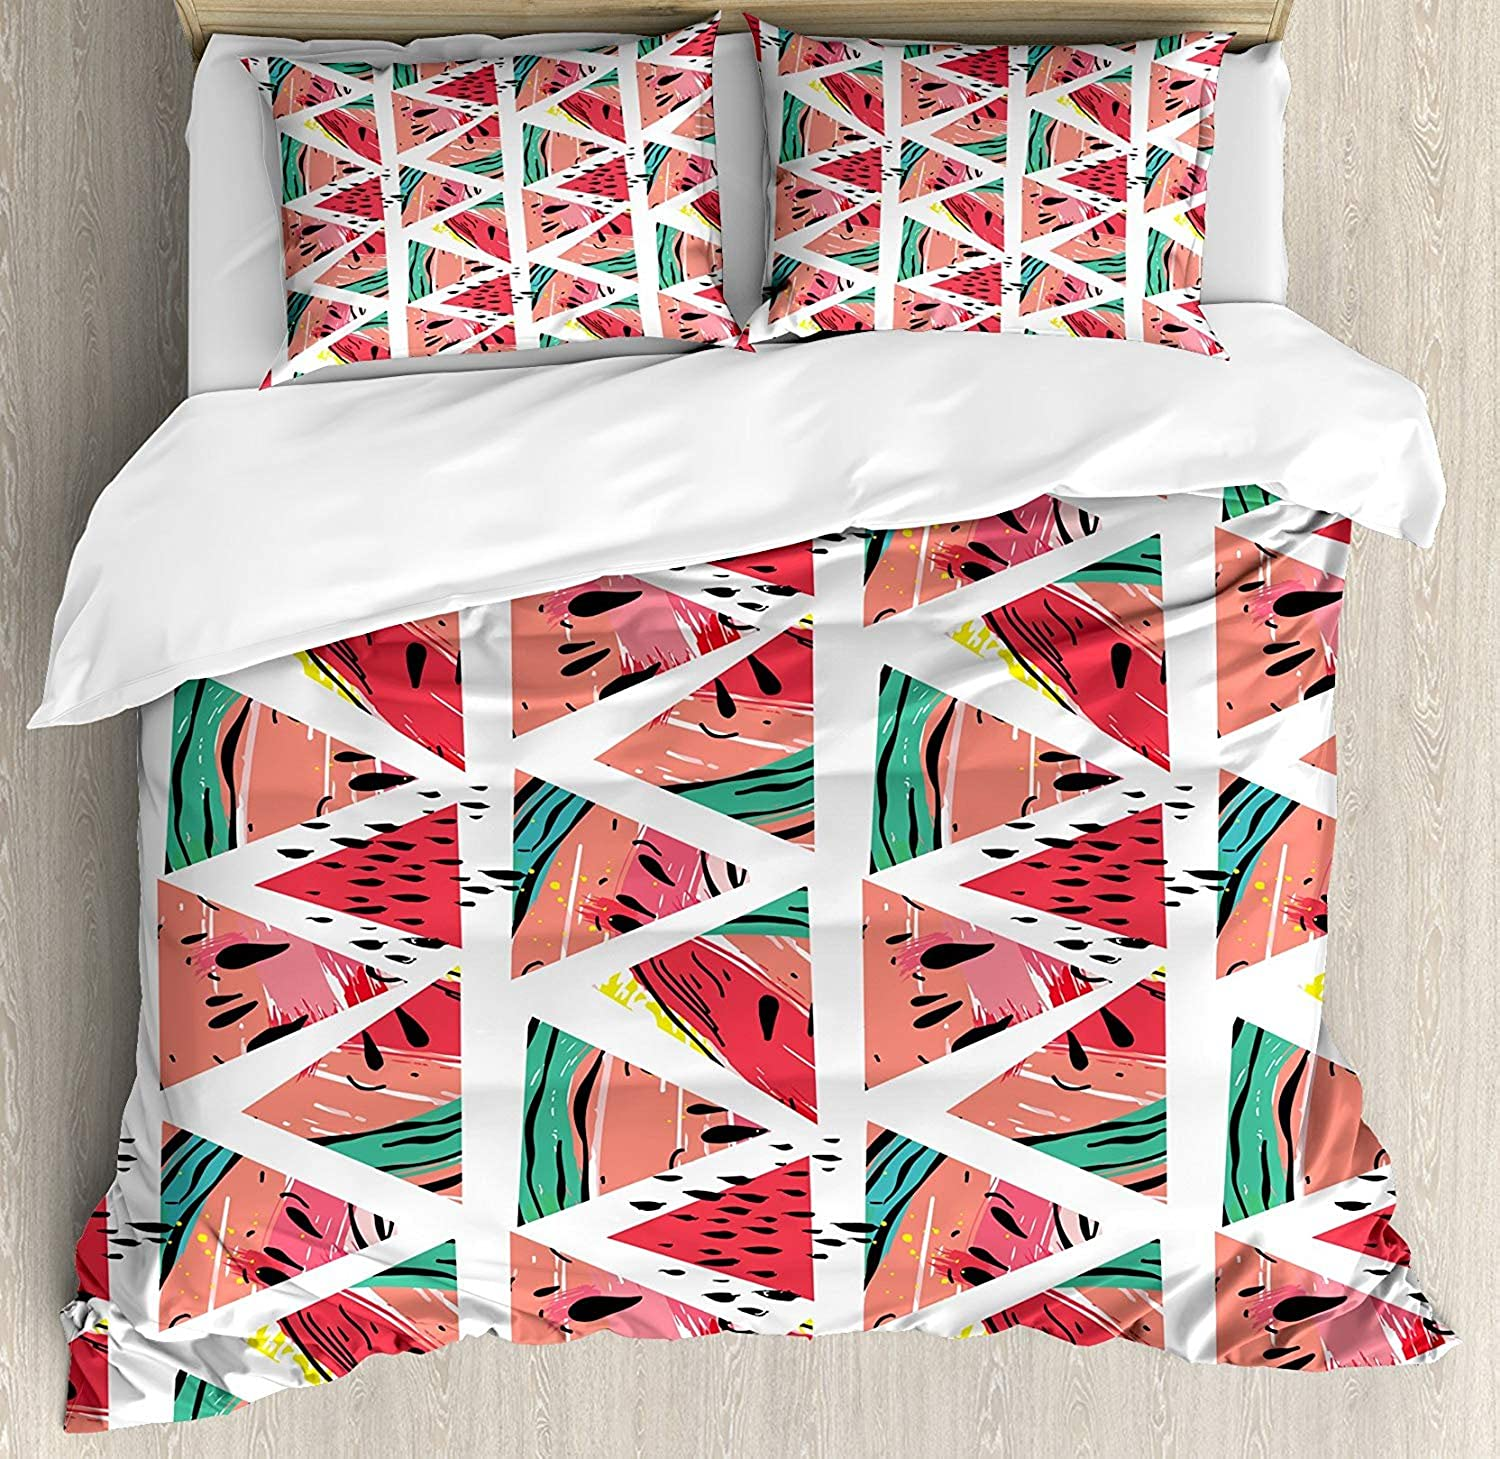 OxOHome Watercolor Bedding SetsAbstract Watermelon Pattern in Triangles Hipster Hand Drawn Tropical Duvet Cover Sets Coral Pink Turquoise Full Bedding Comforter Cover Sets Soft Bedding Collections